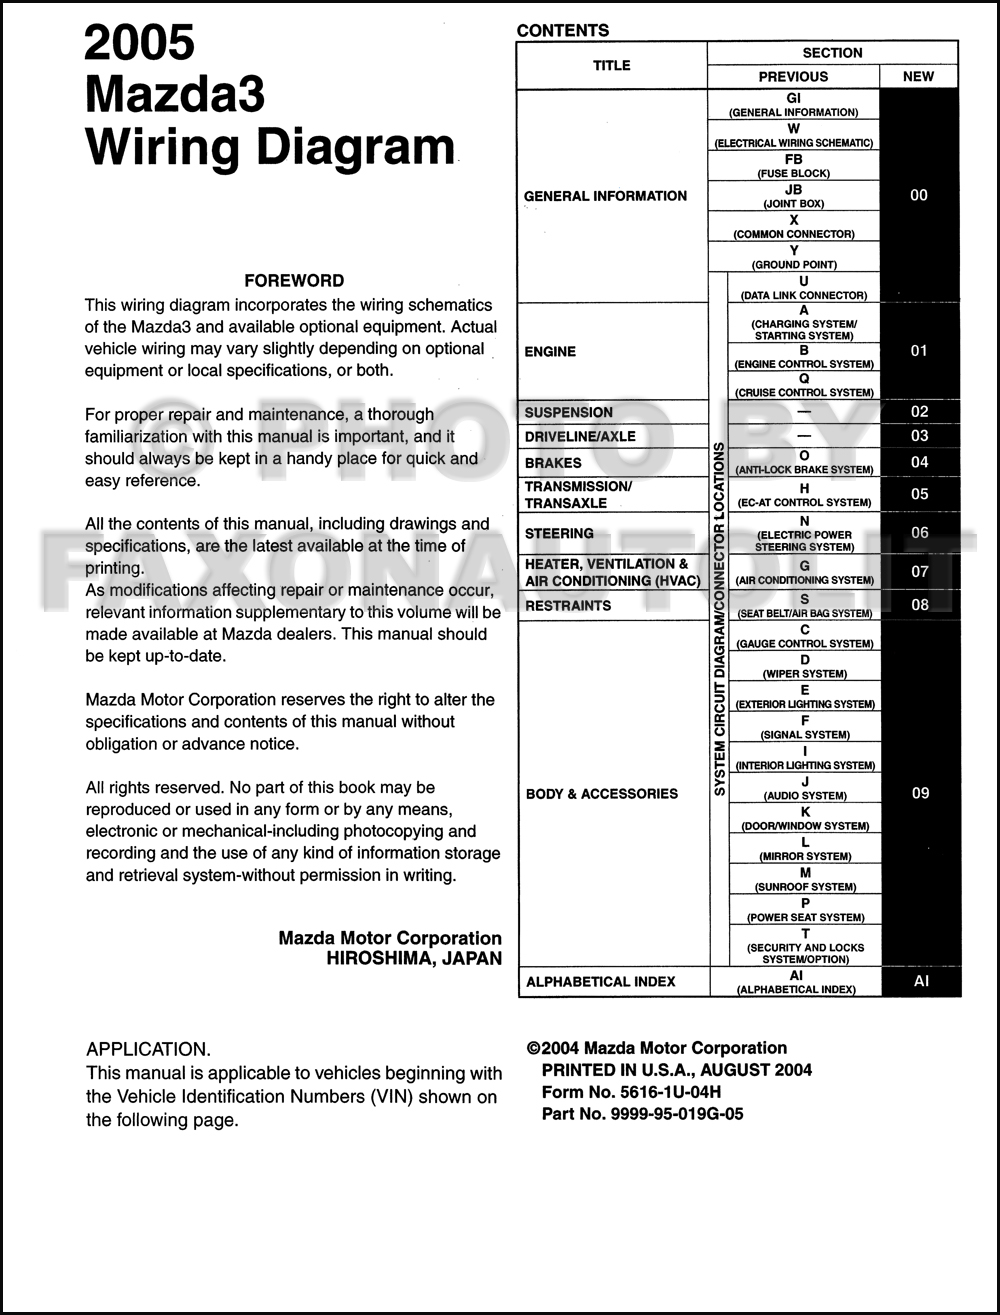 2005 mazda 3 wiring diagram manual original 2005 mazda 3 wiring diagram manual original click on thumbnail to zoom asfbconference2016 Image collections